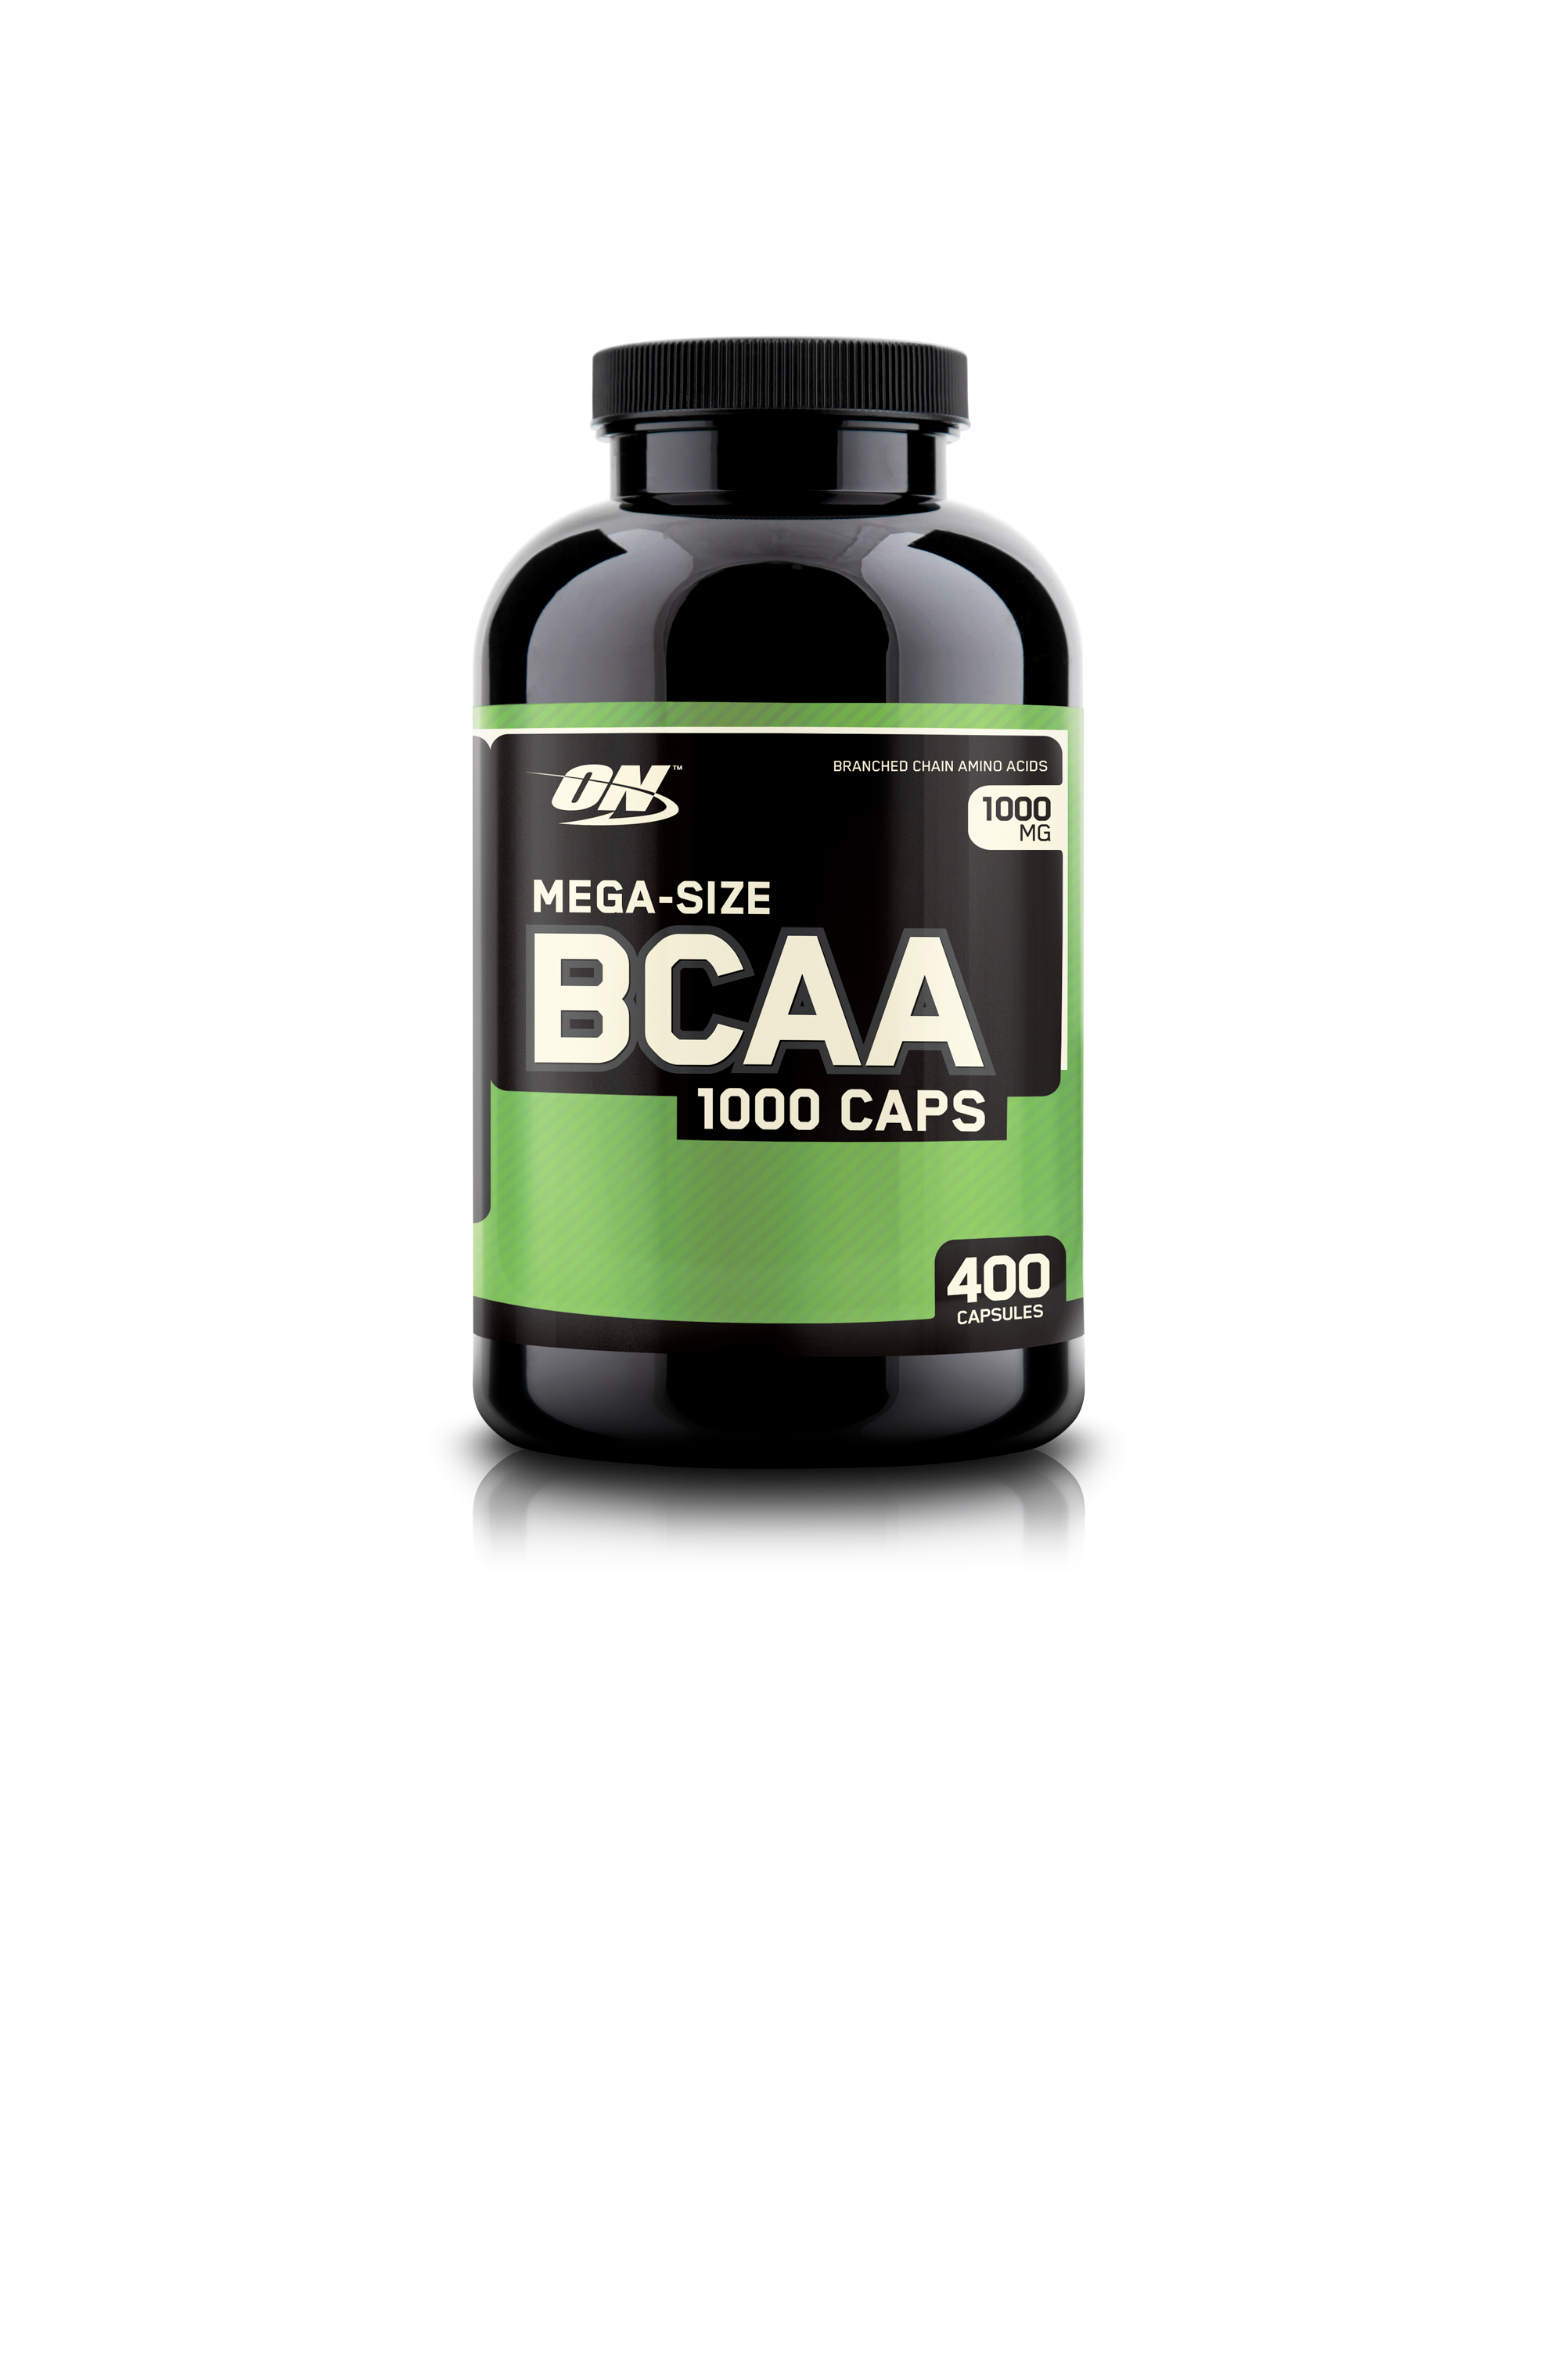 BCAA в капсулах ON  mega - size BCAA 1000 - 400 капс